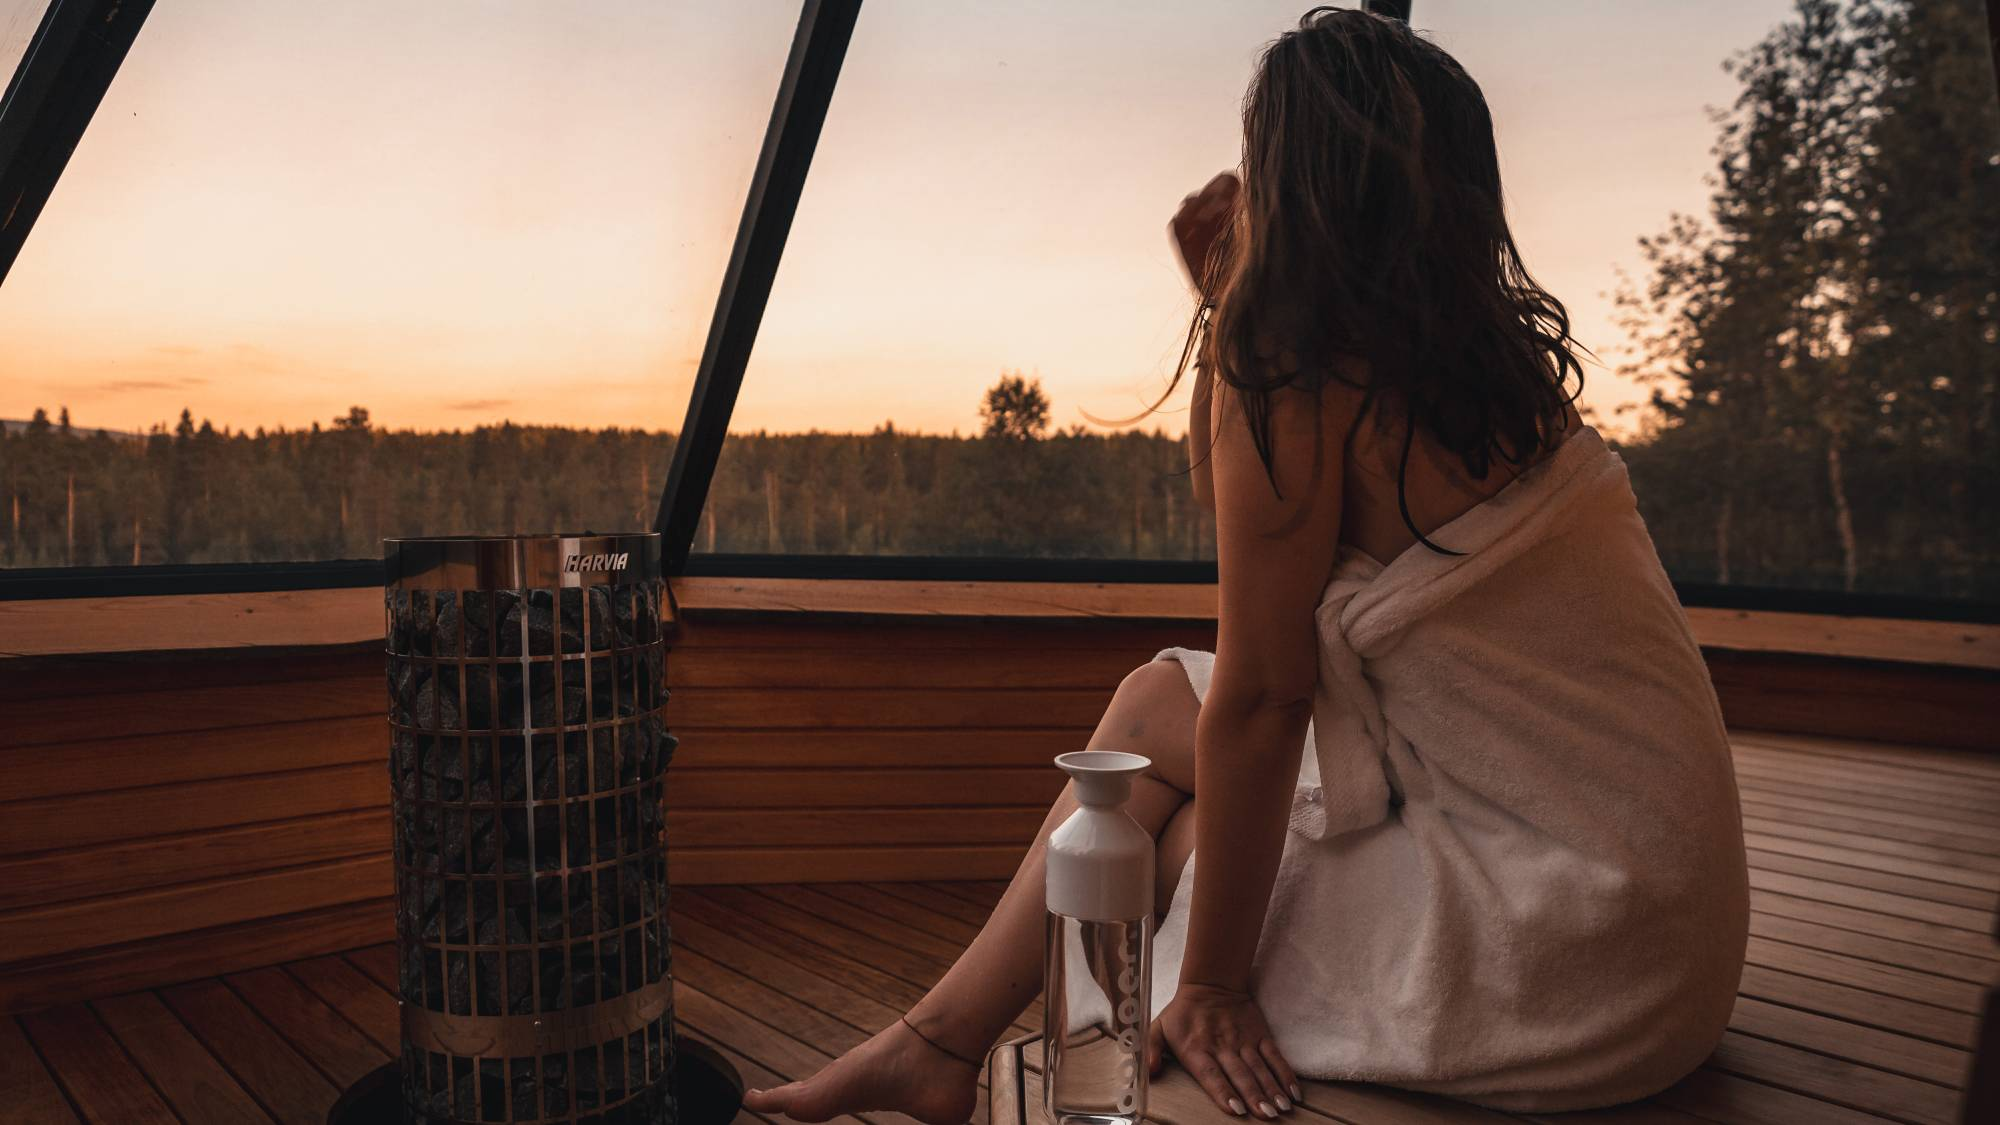 A woman in sauna gazing at the treeline.